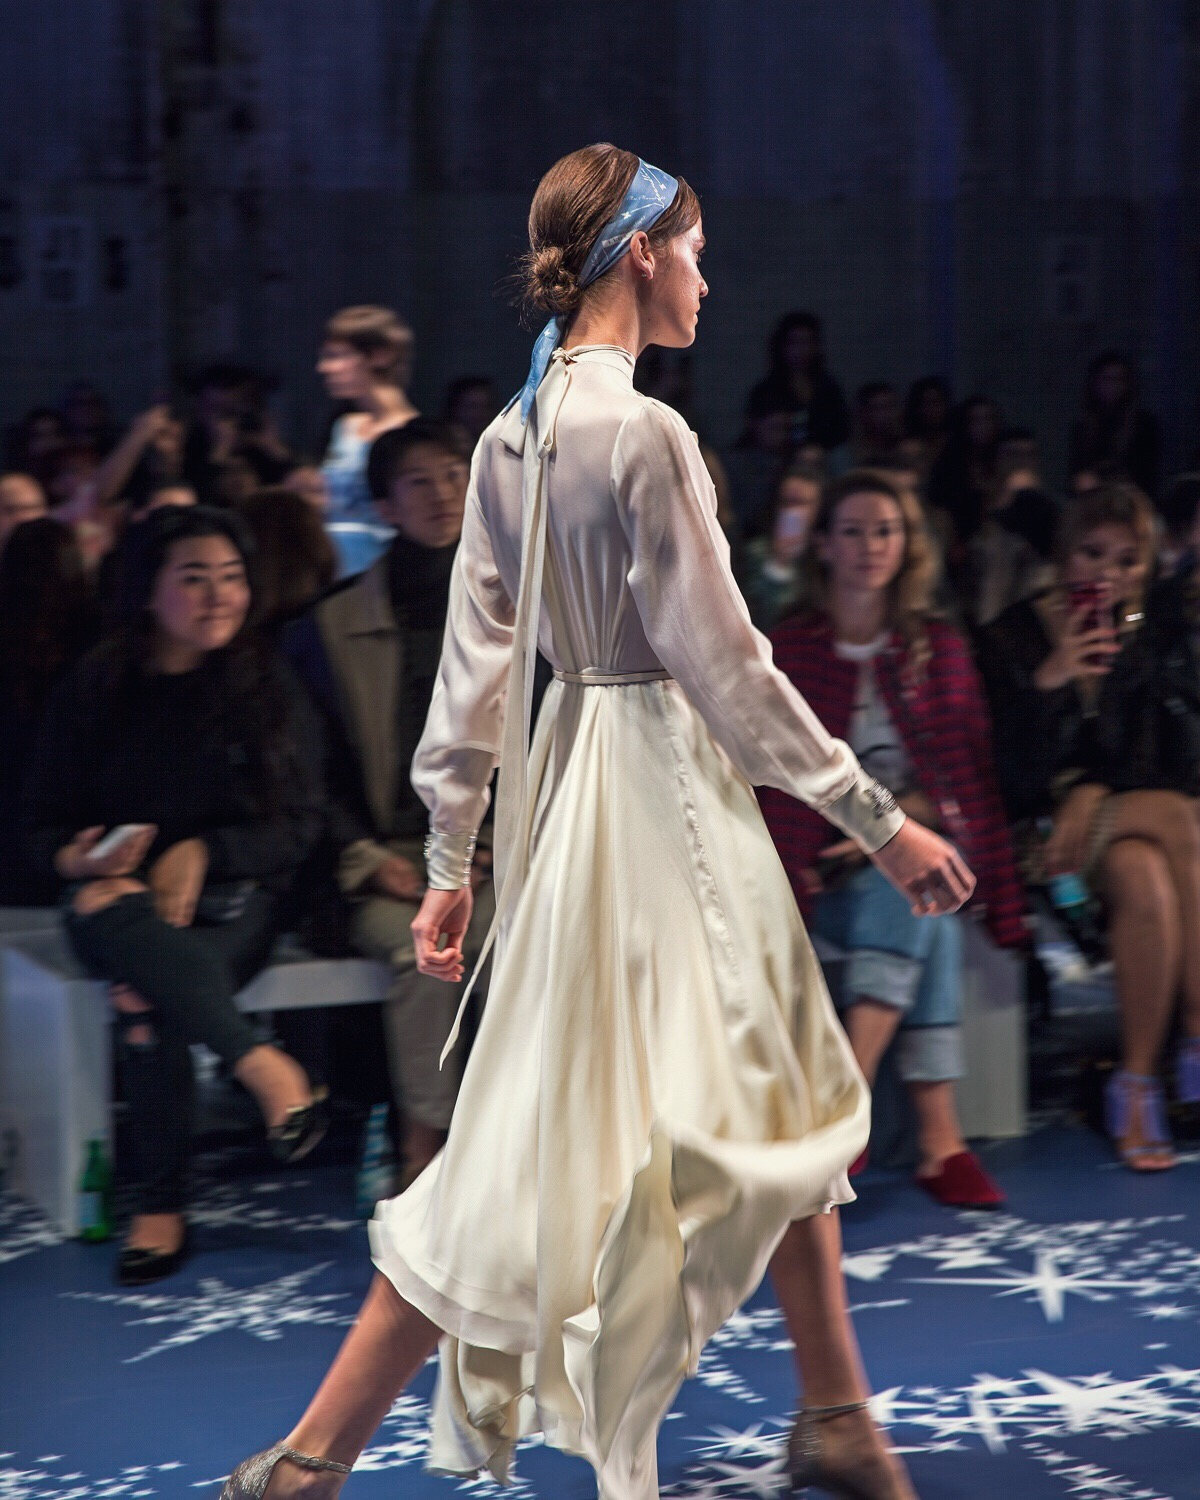 Leo and Lin on the MBFWA 2018 runway shot by Inspiring Wit blogger Jenelle